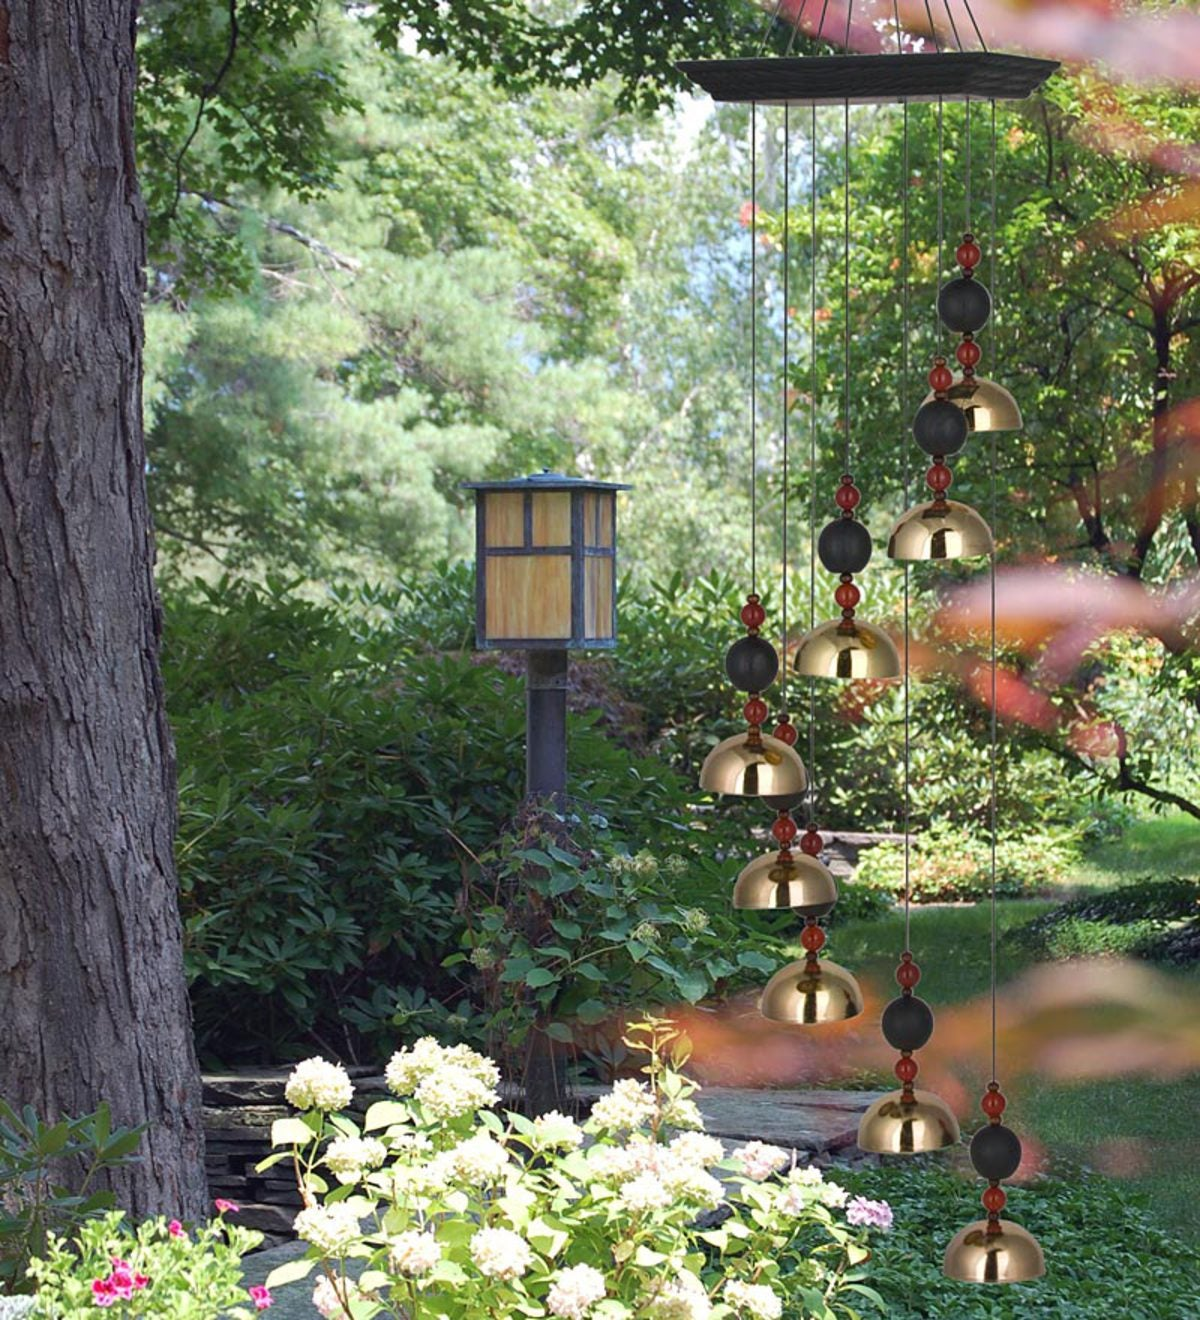 Image result for garden with wind chimes